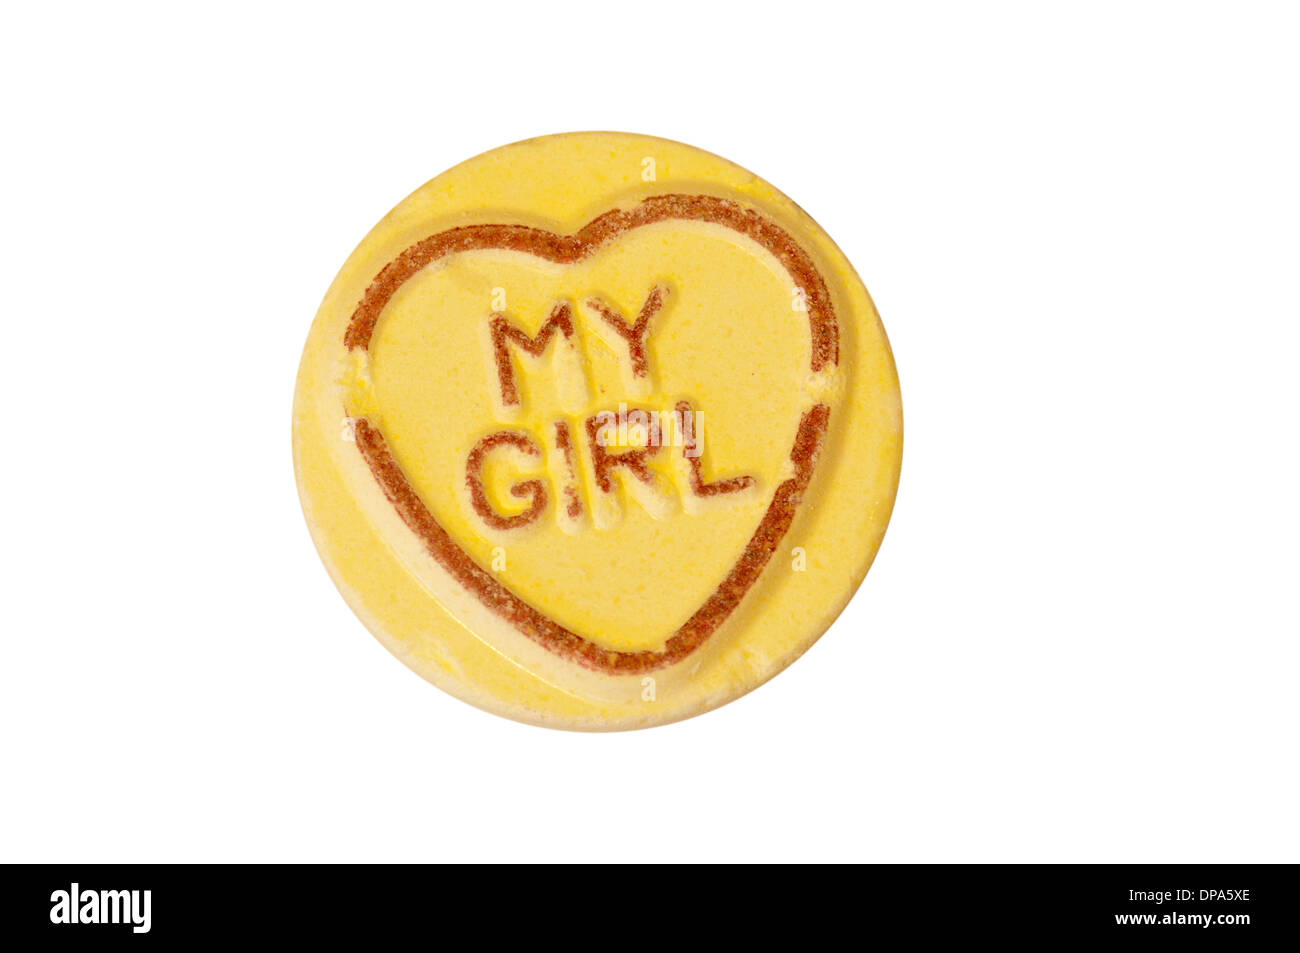 Love Heart Sweet My Girl - Stock Image